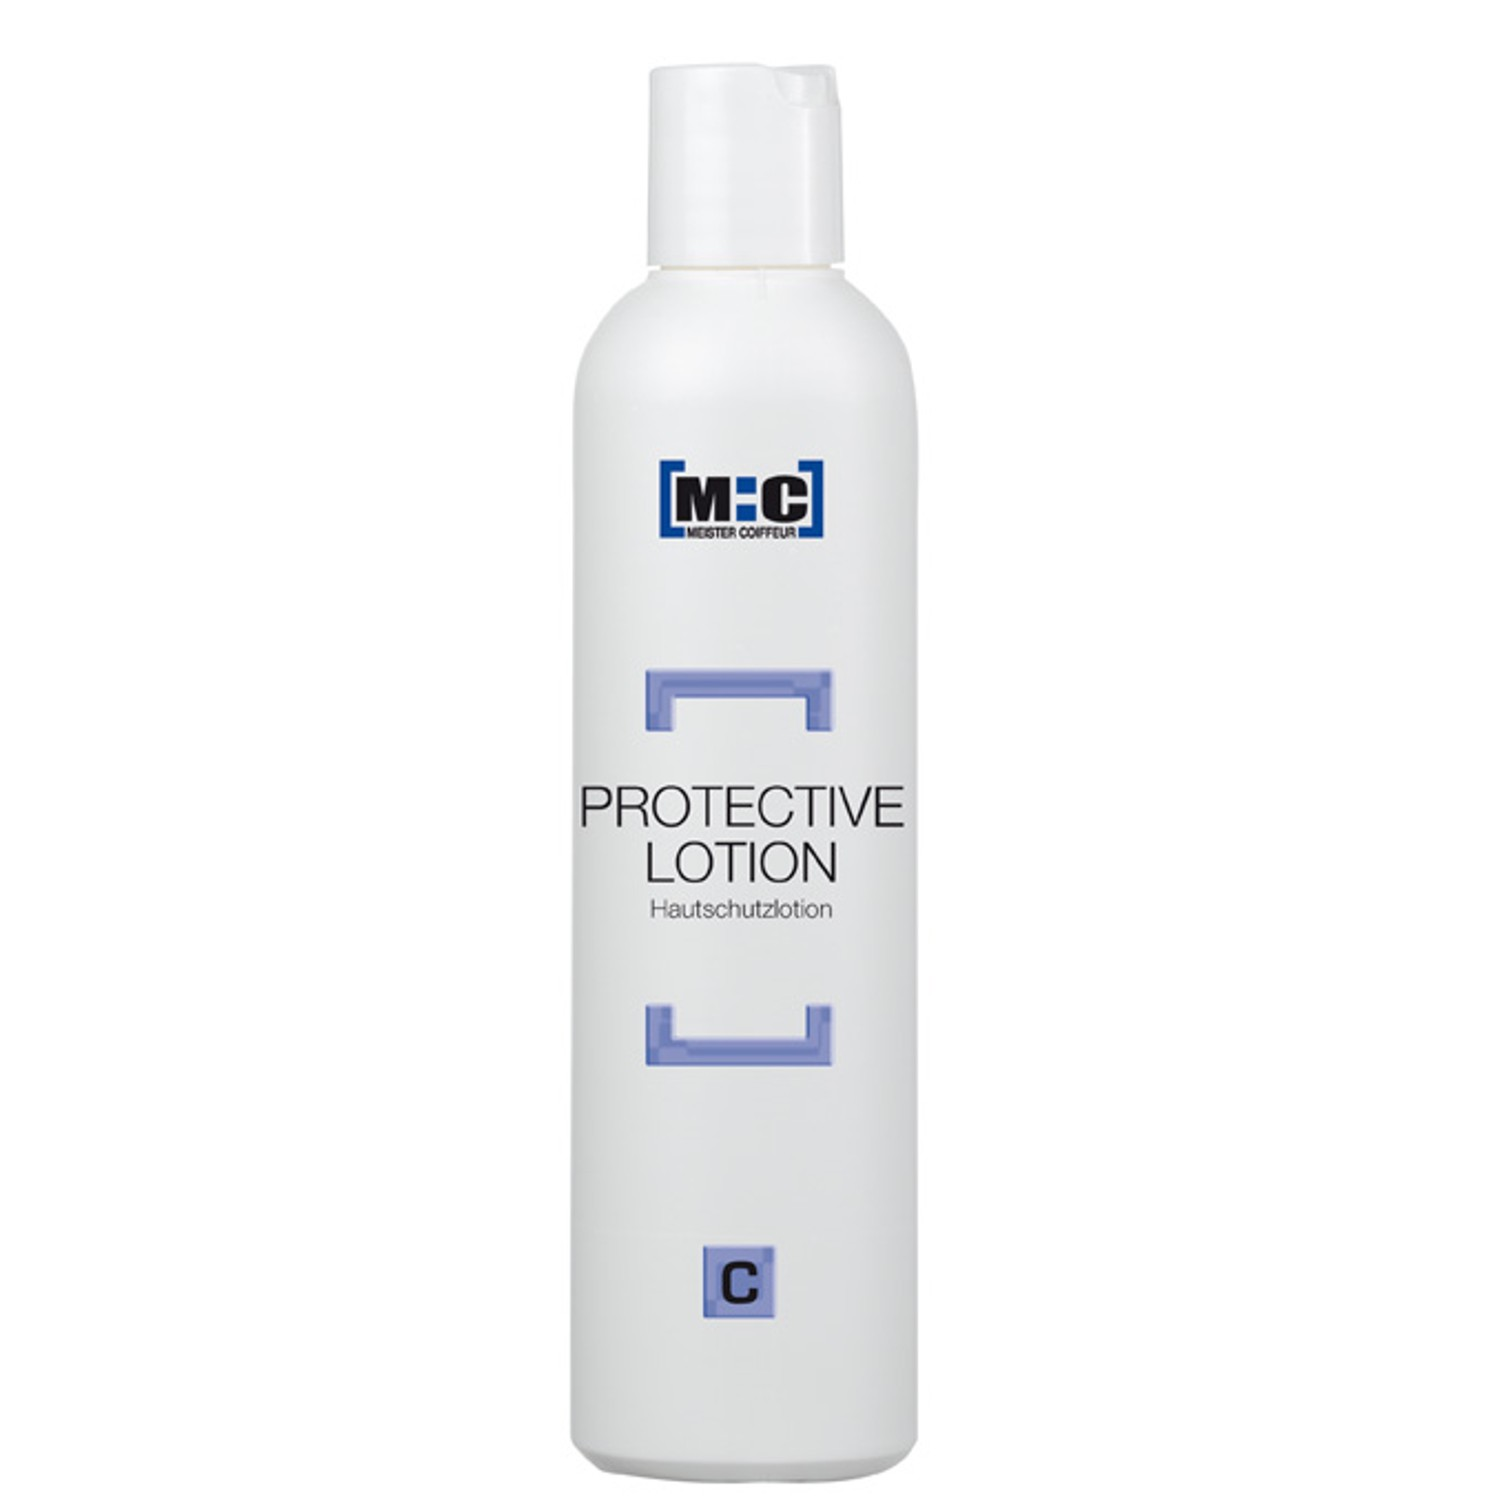 Meister Coiffeur M:C Protective Lotion C 250 ml